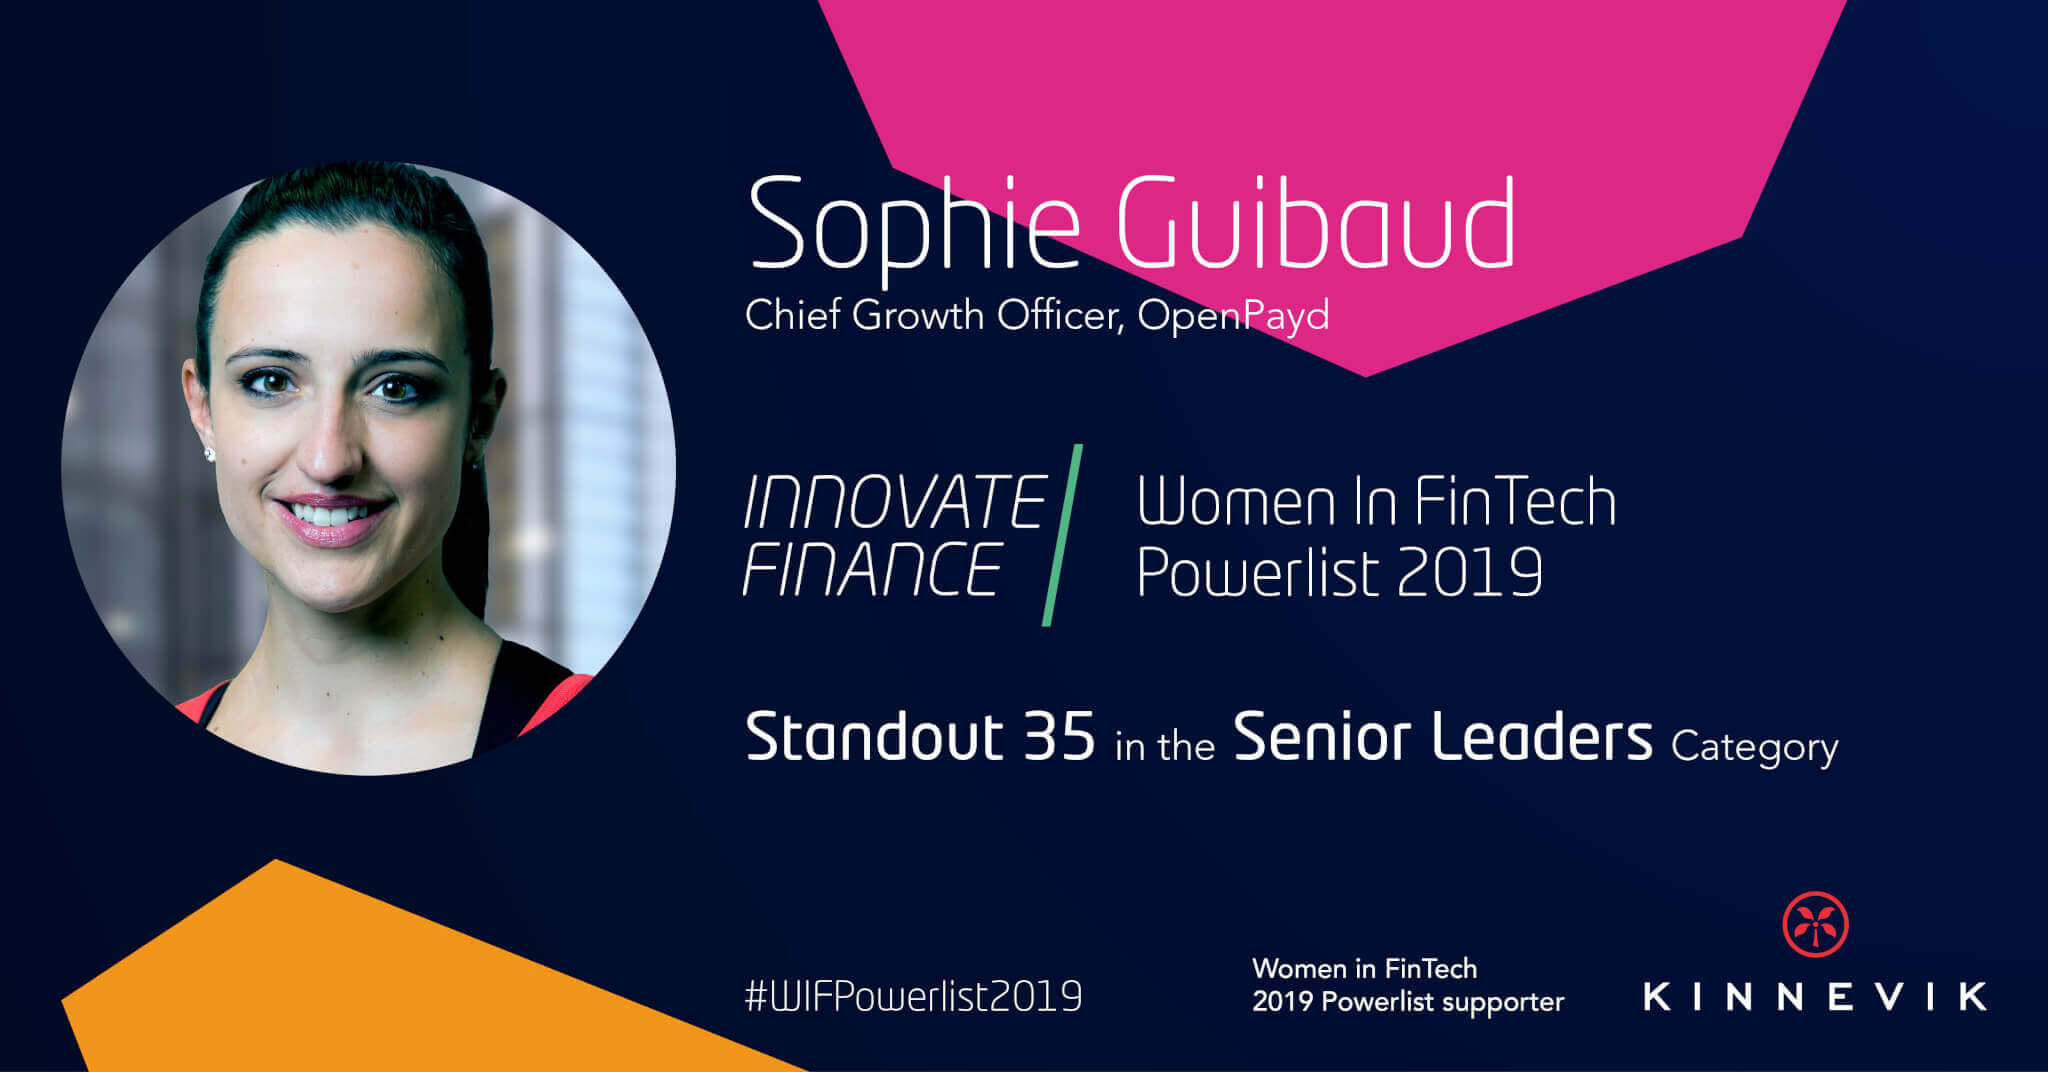 Women In FinTech Powerlist 2019 Revealed